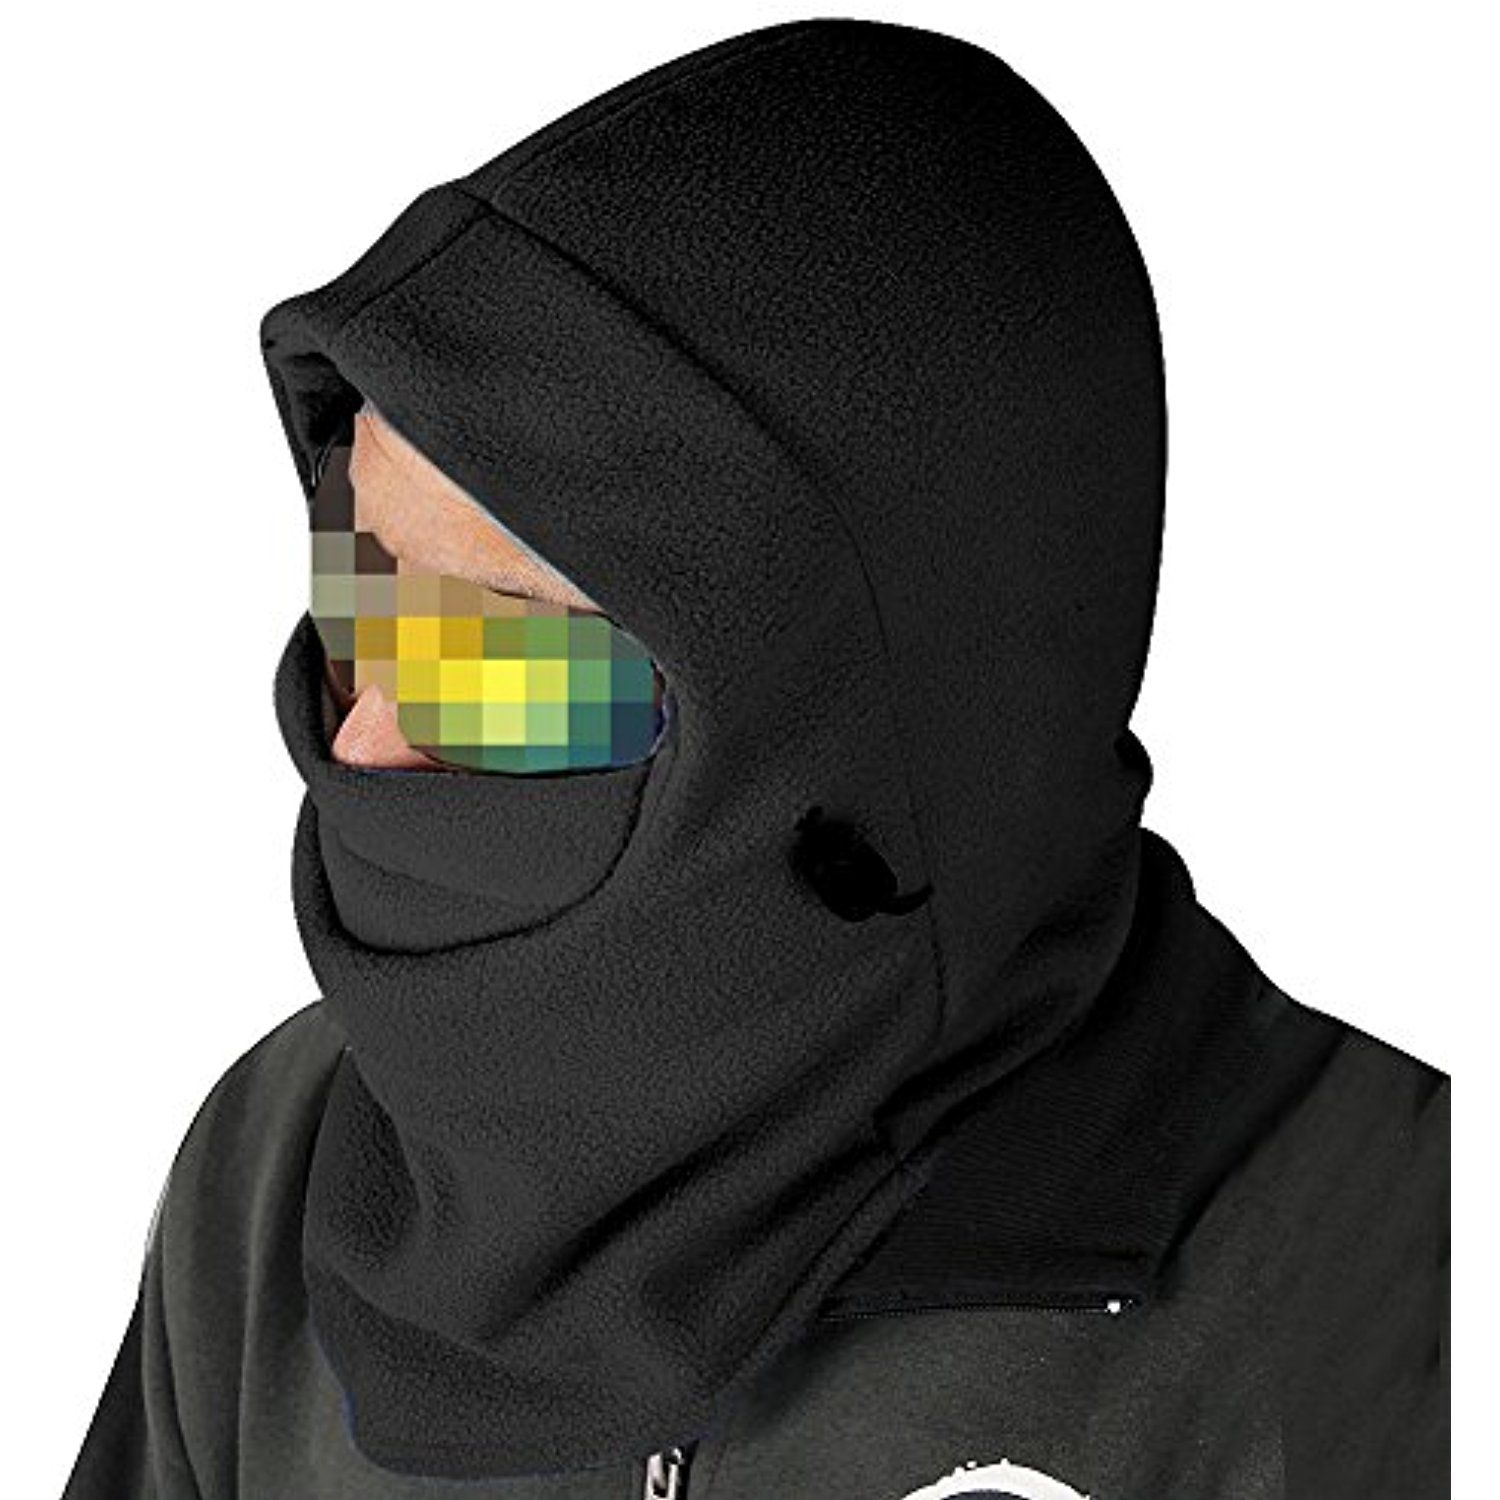 bbc3b7ac313 Nsstar Thermal Warm Fleece Full Face Mask Balaclava CS Mask Head and Neck  Cover Warmer Windproof Hooded Scraf Hat for Winter Outdoor Sports Cycling  ...